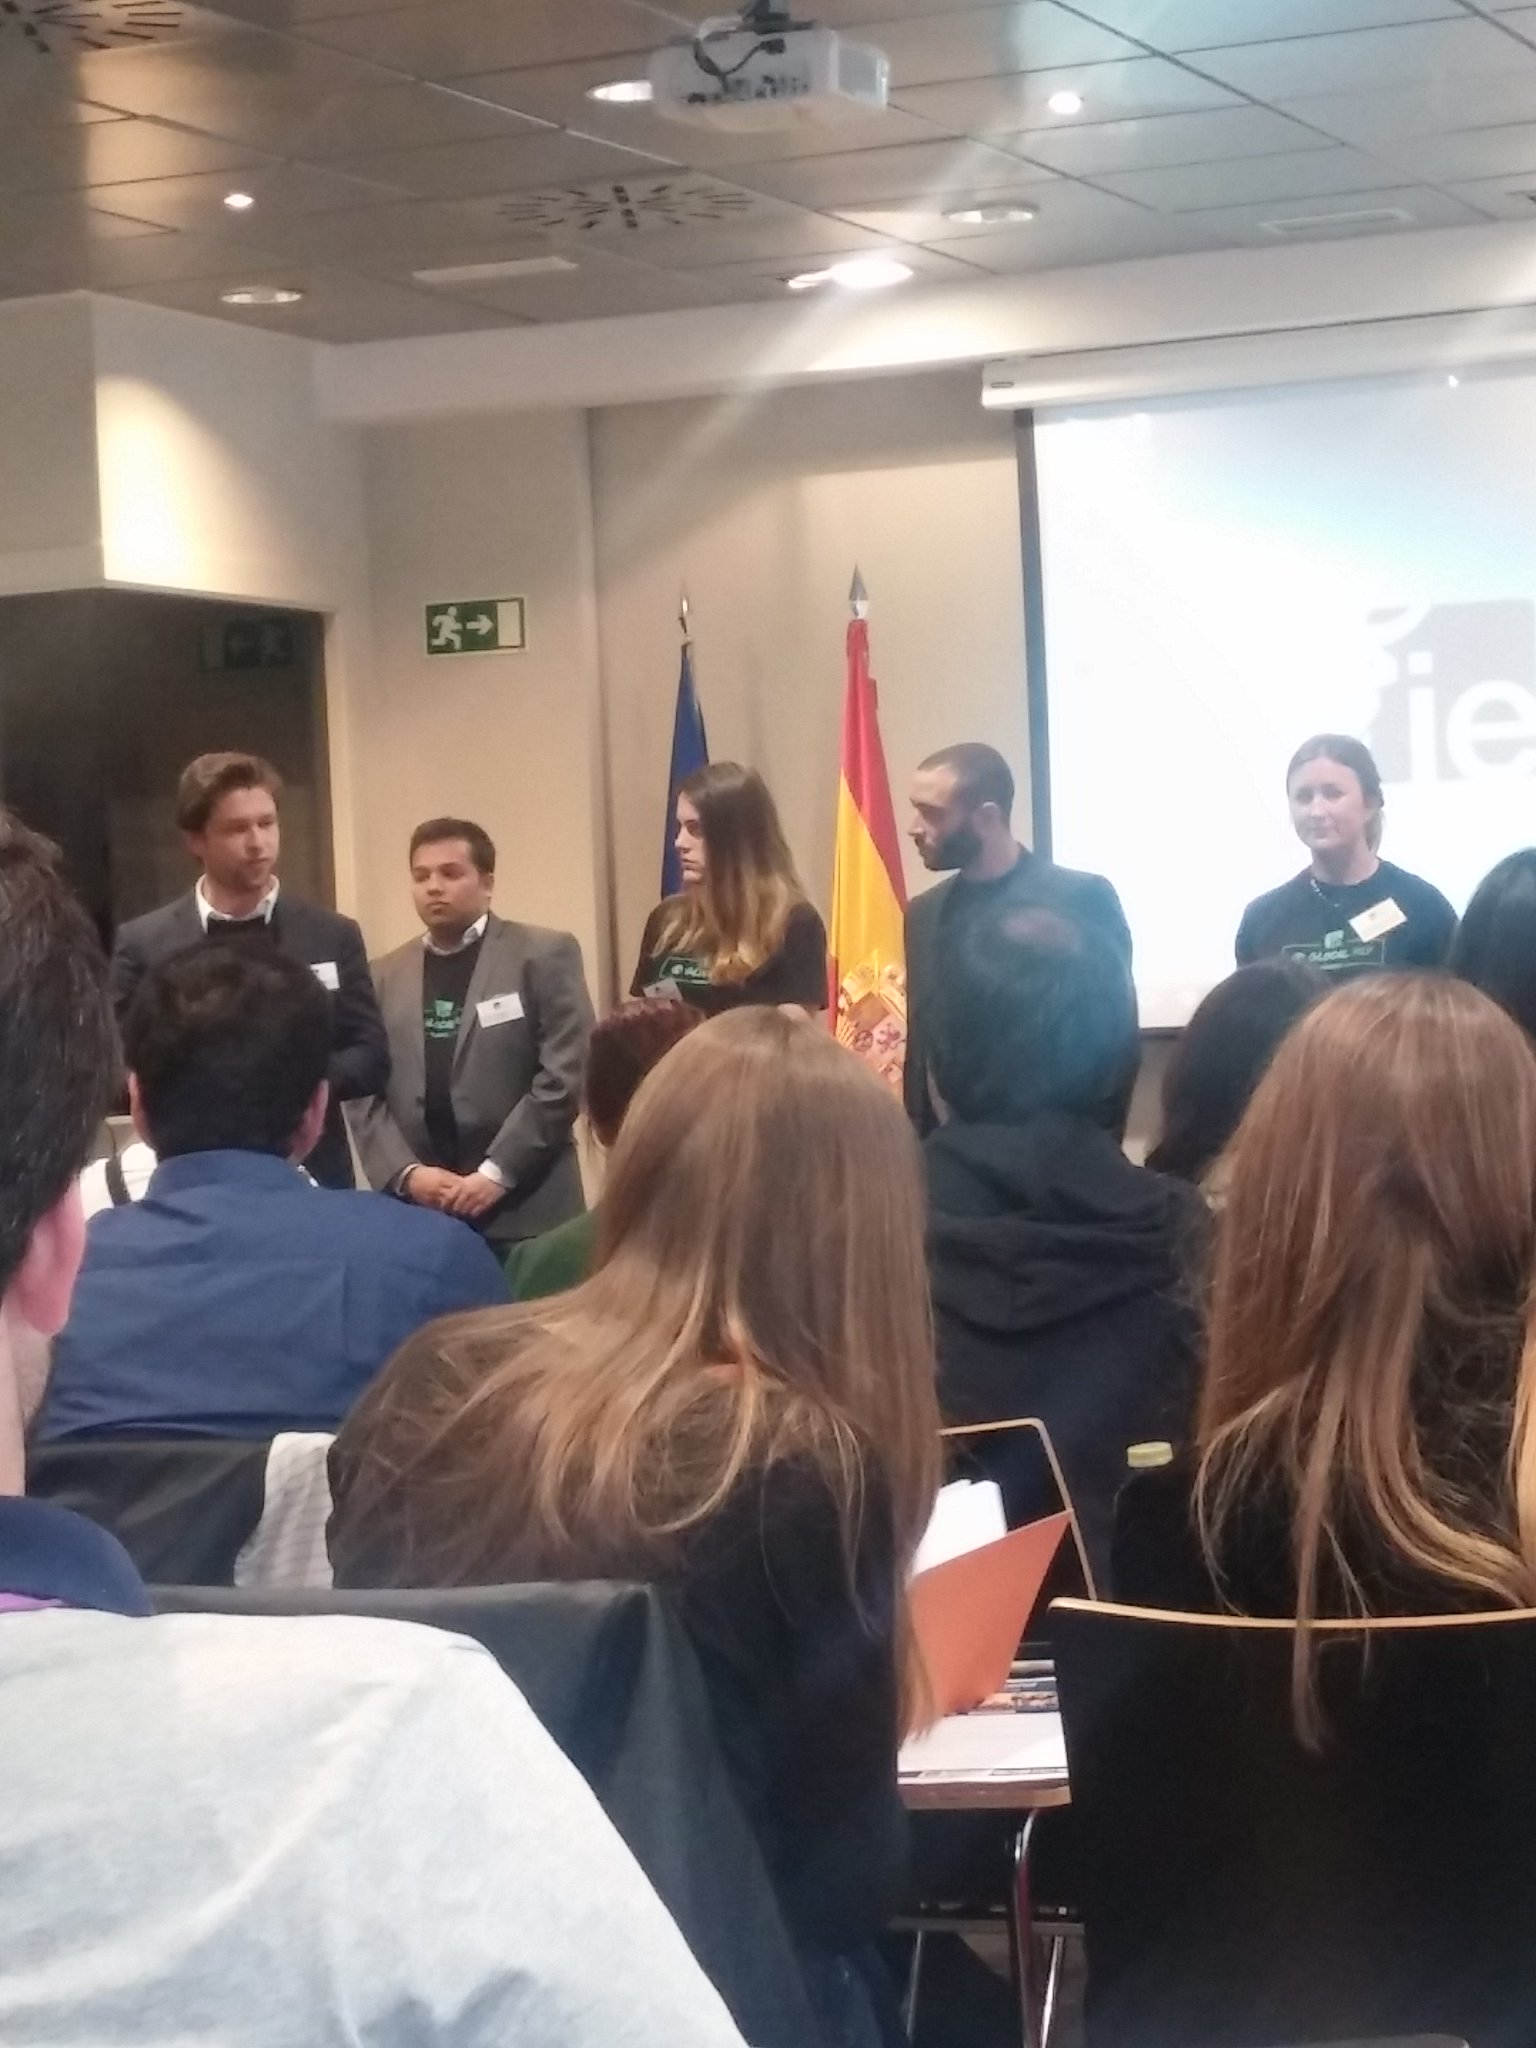 Michail, one of our current #ieMBD students, speaking to #IEWeekend participants about #LifeAtIE! https://t.co/iXrwAFm7lL